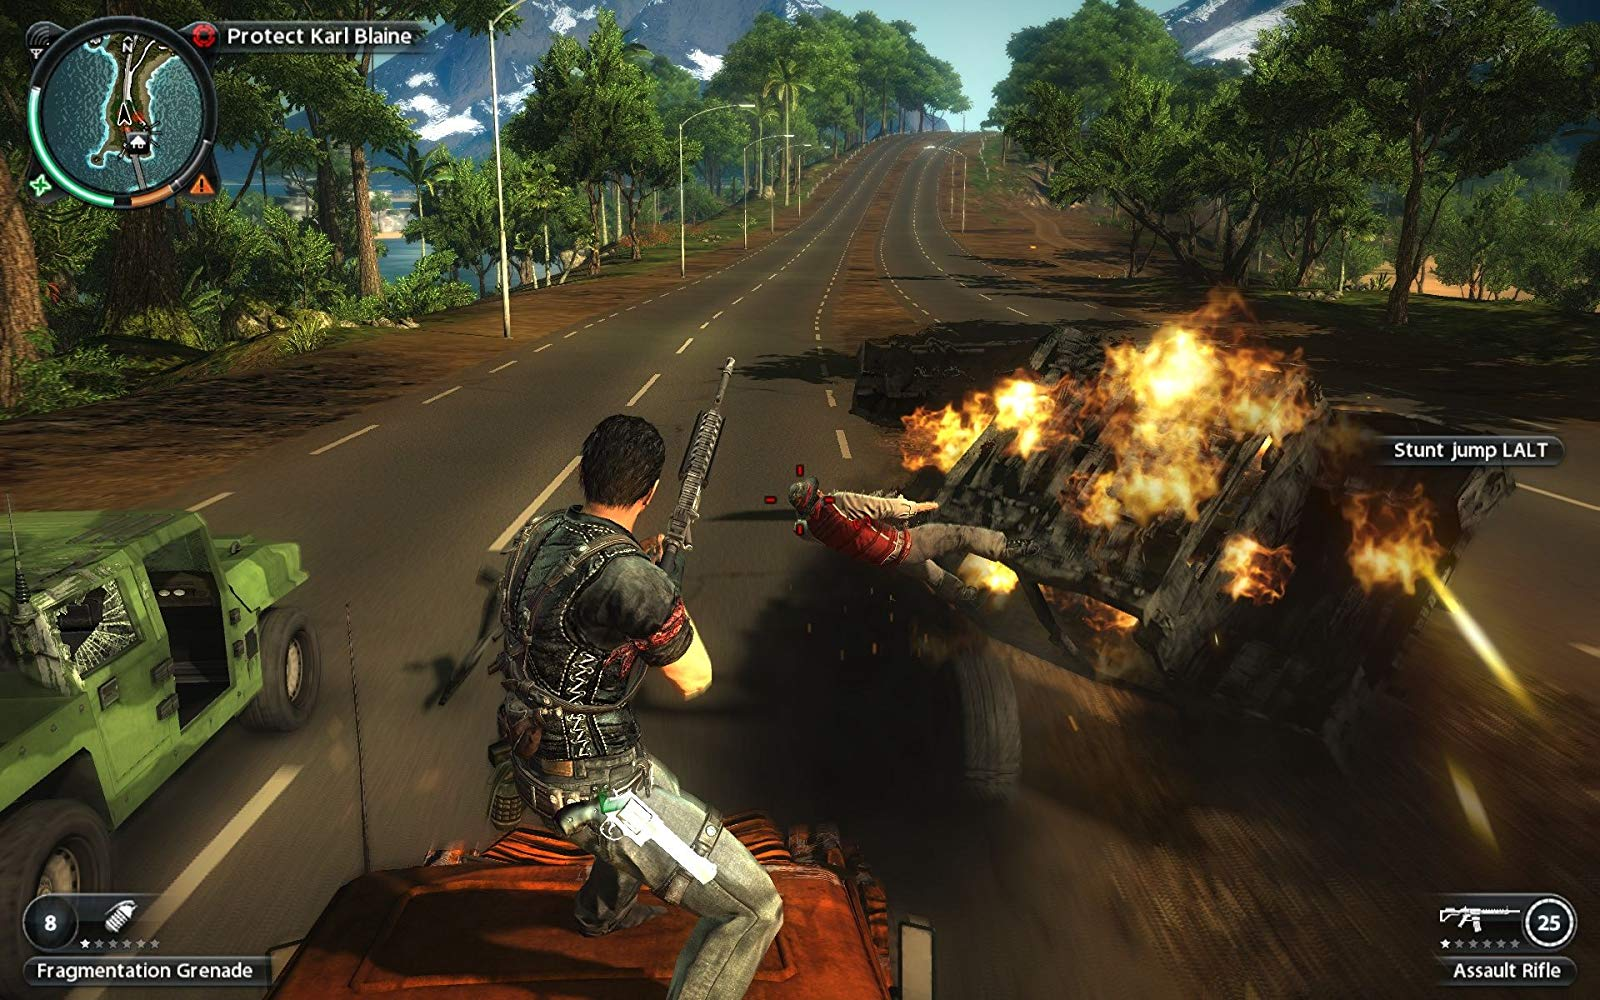 Just Cause 2 Overview